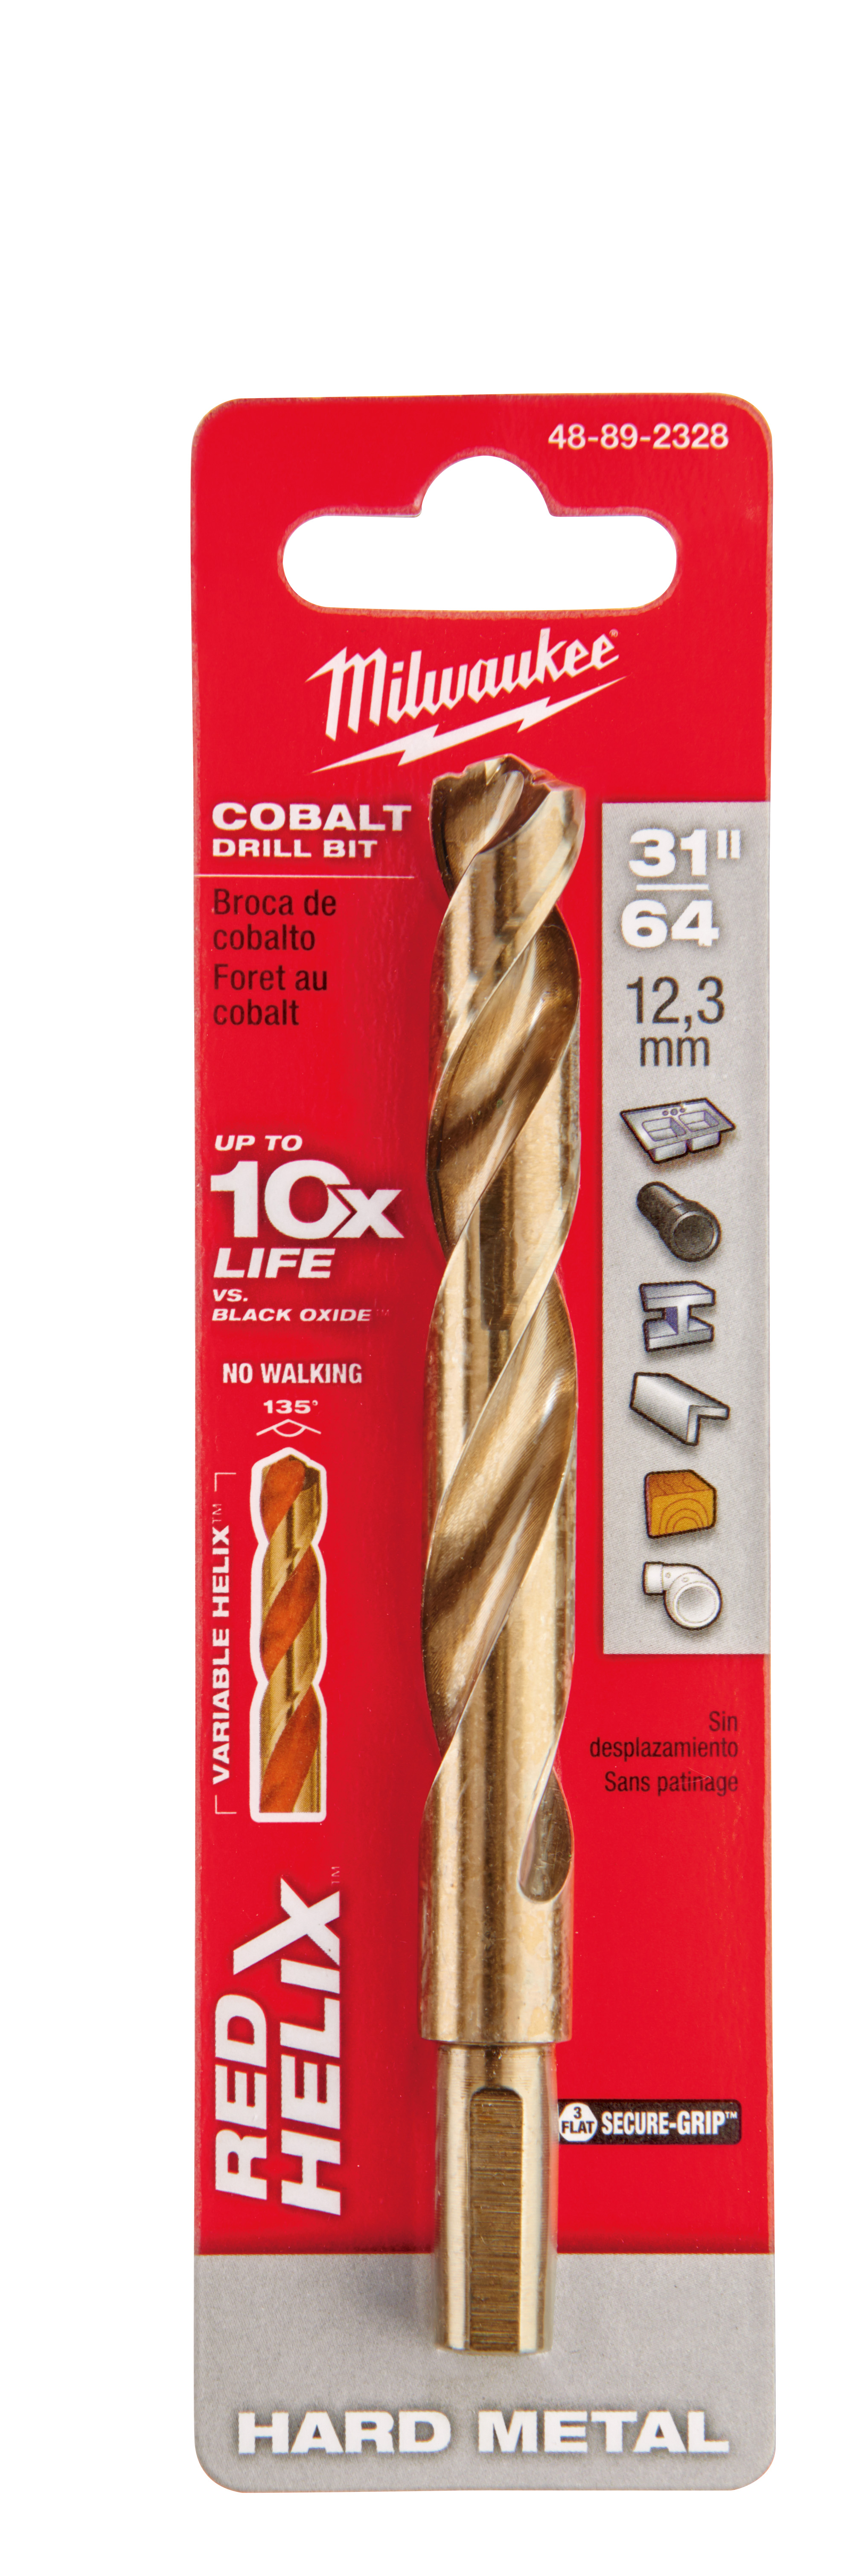 Milwaukee® 48-89-2328 RED HELIX™ Jobber Length Twist Drill Bit, 31/63 in Drill - Fraction, 0.4844 in Drill - Decimal Inch, 135 deg Point, High Speed Cobalt, Uncoated